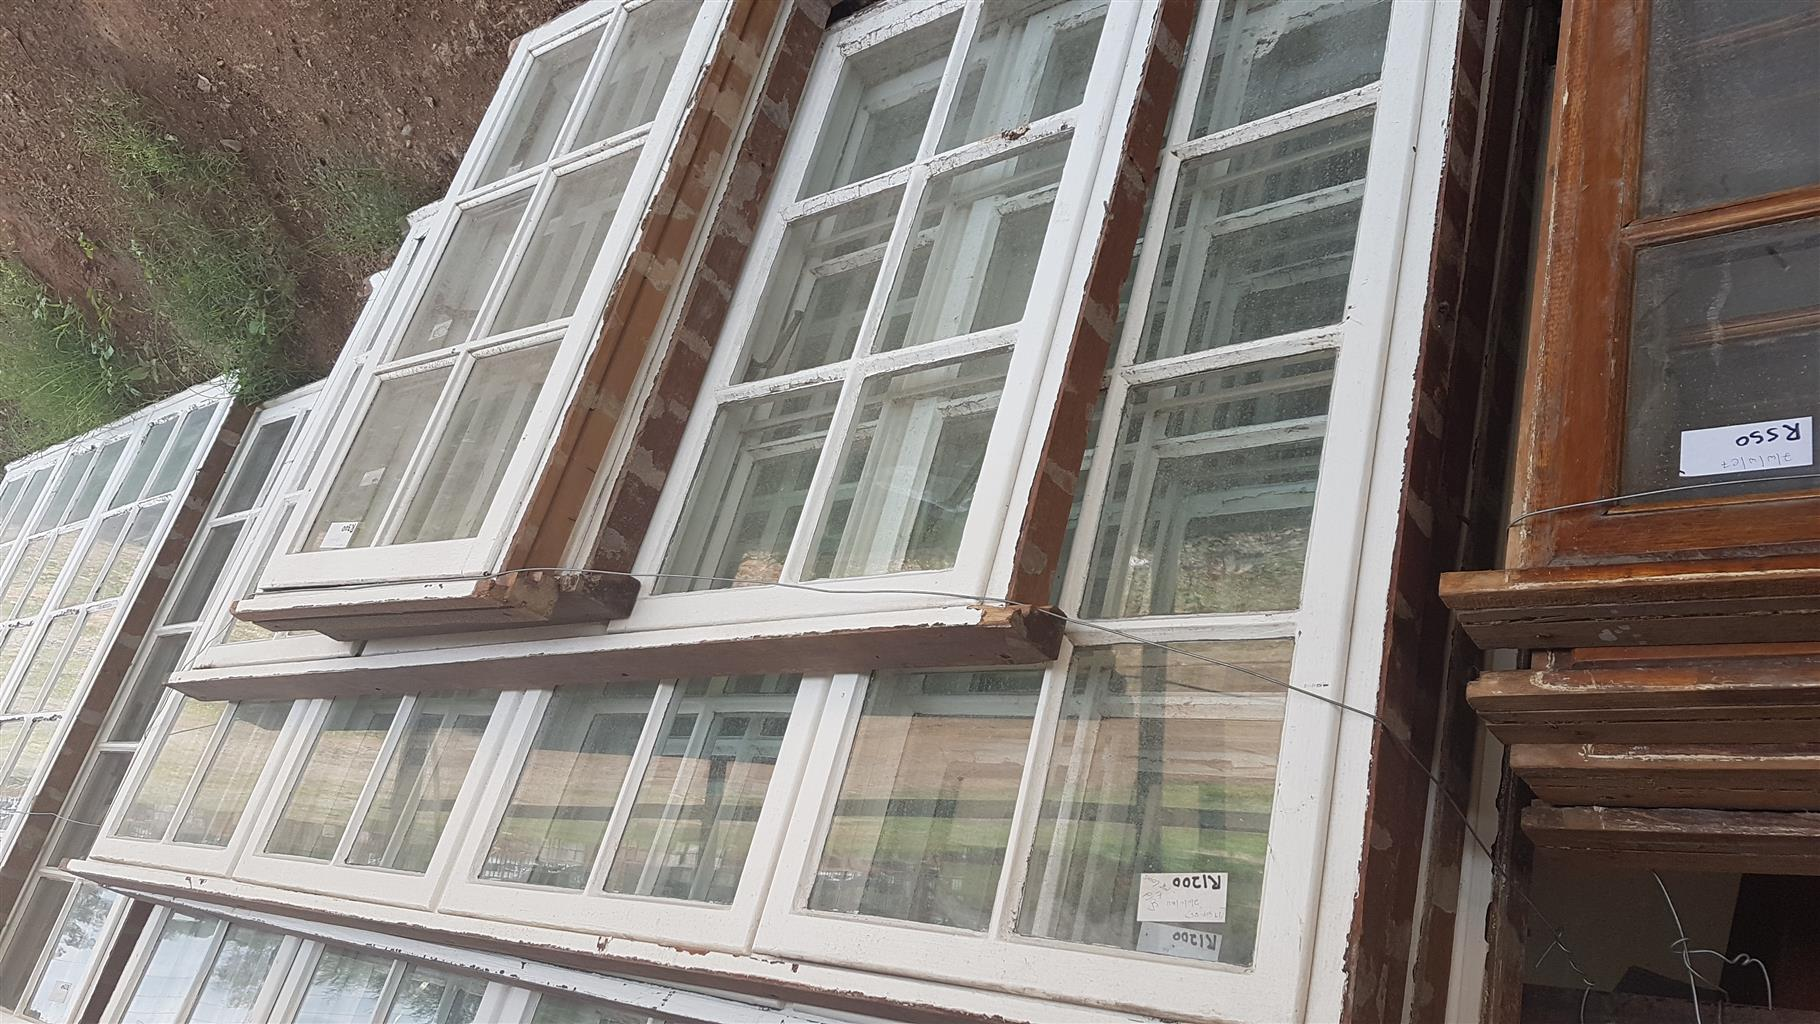 Cotage payne wooden window frames for sale junk mail for Wood windows for sale online